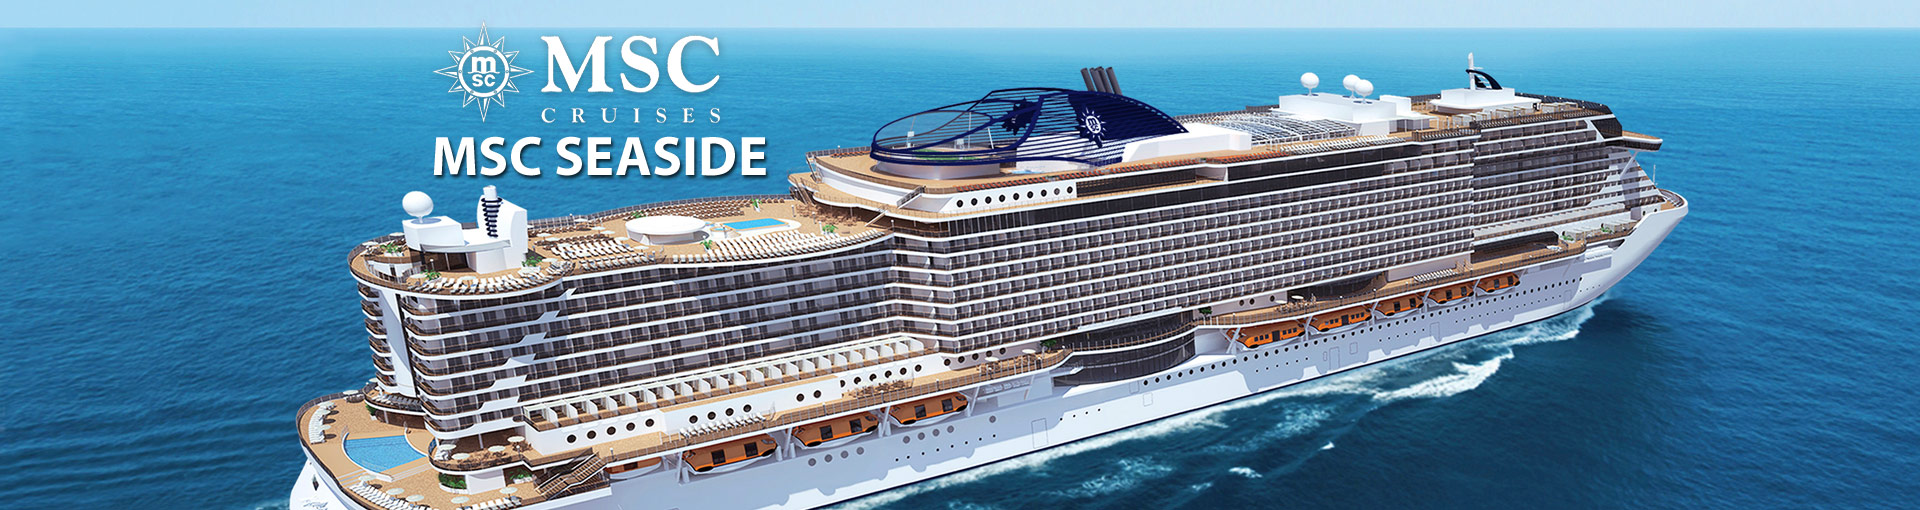 MSC Cruises Seaside